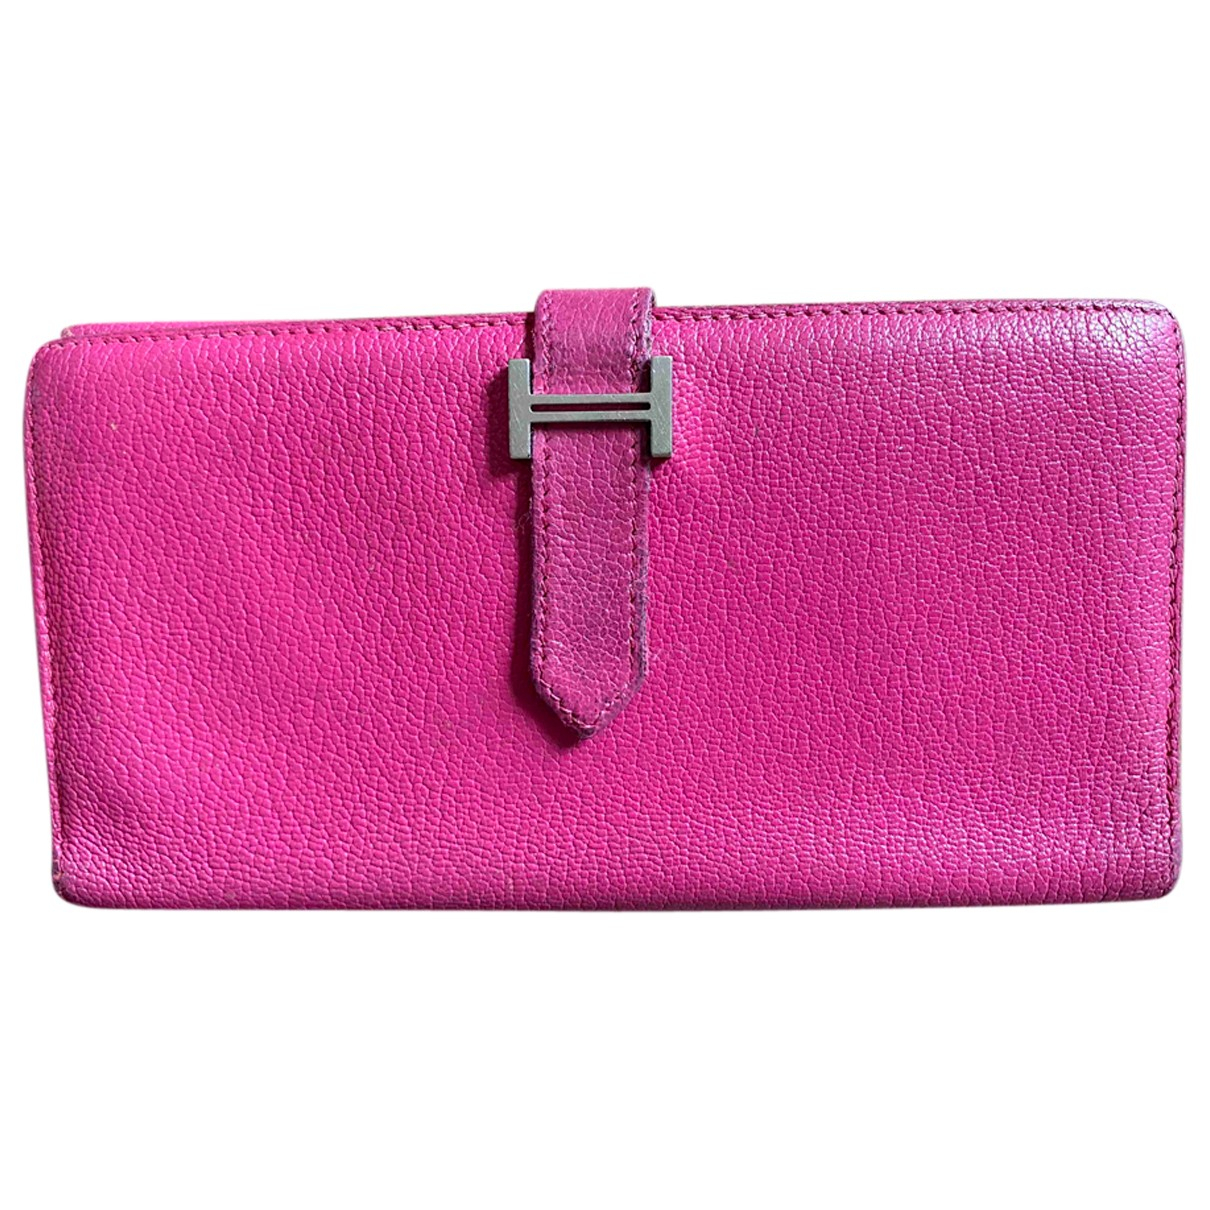 Hermès Béarn Leather wallet for Women N